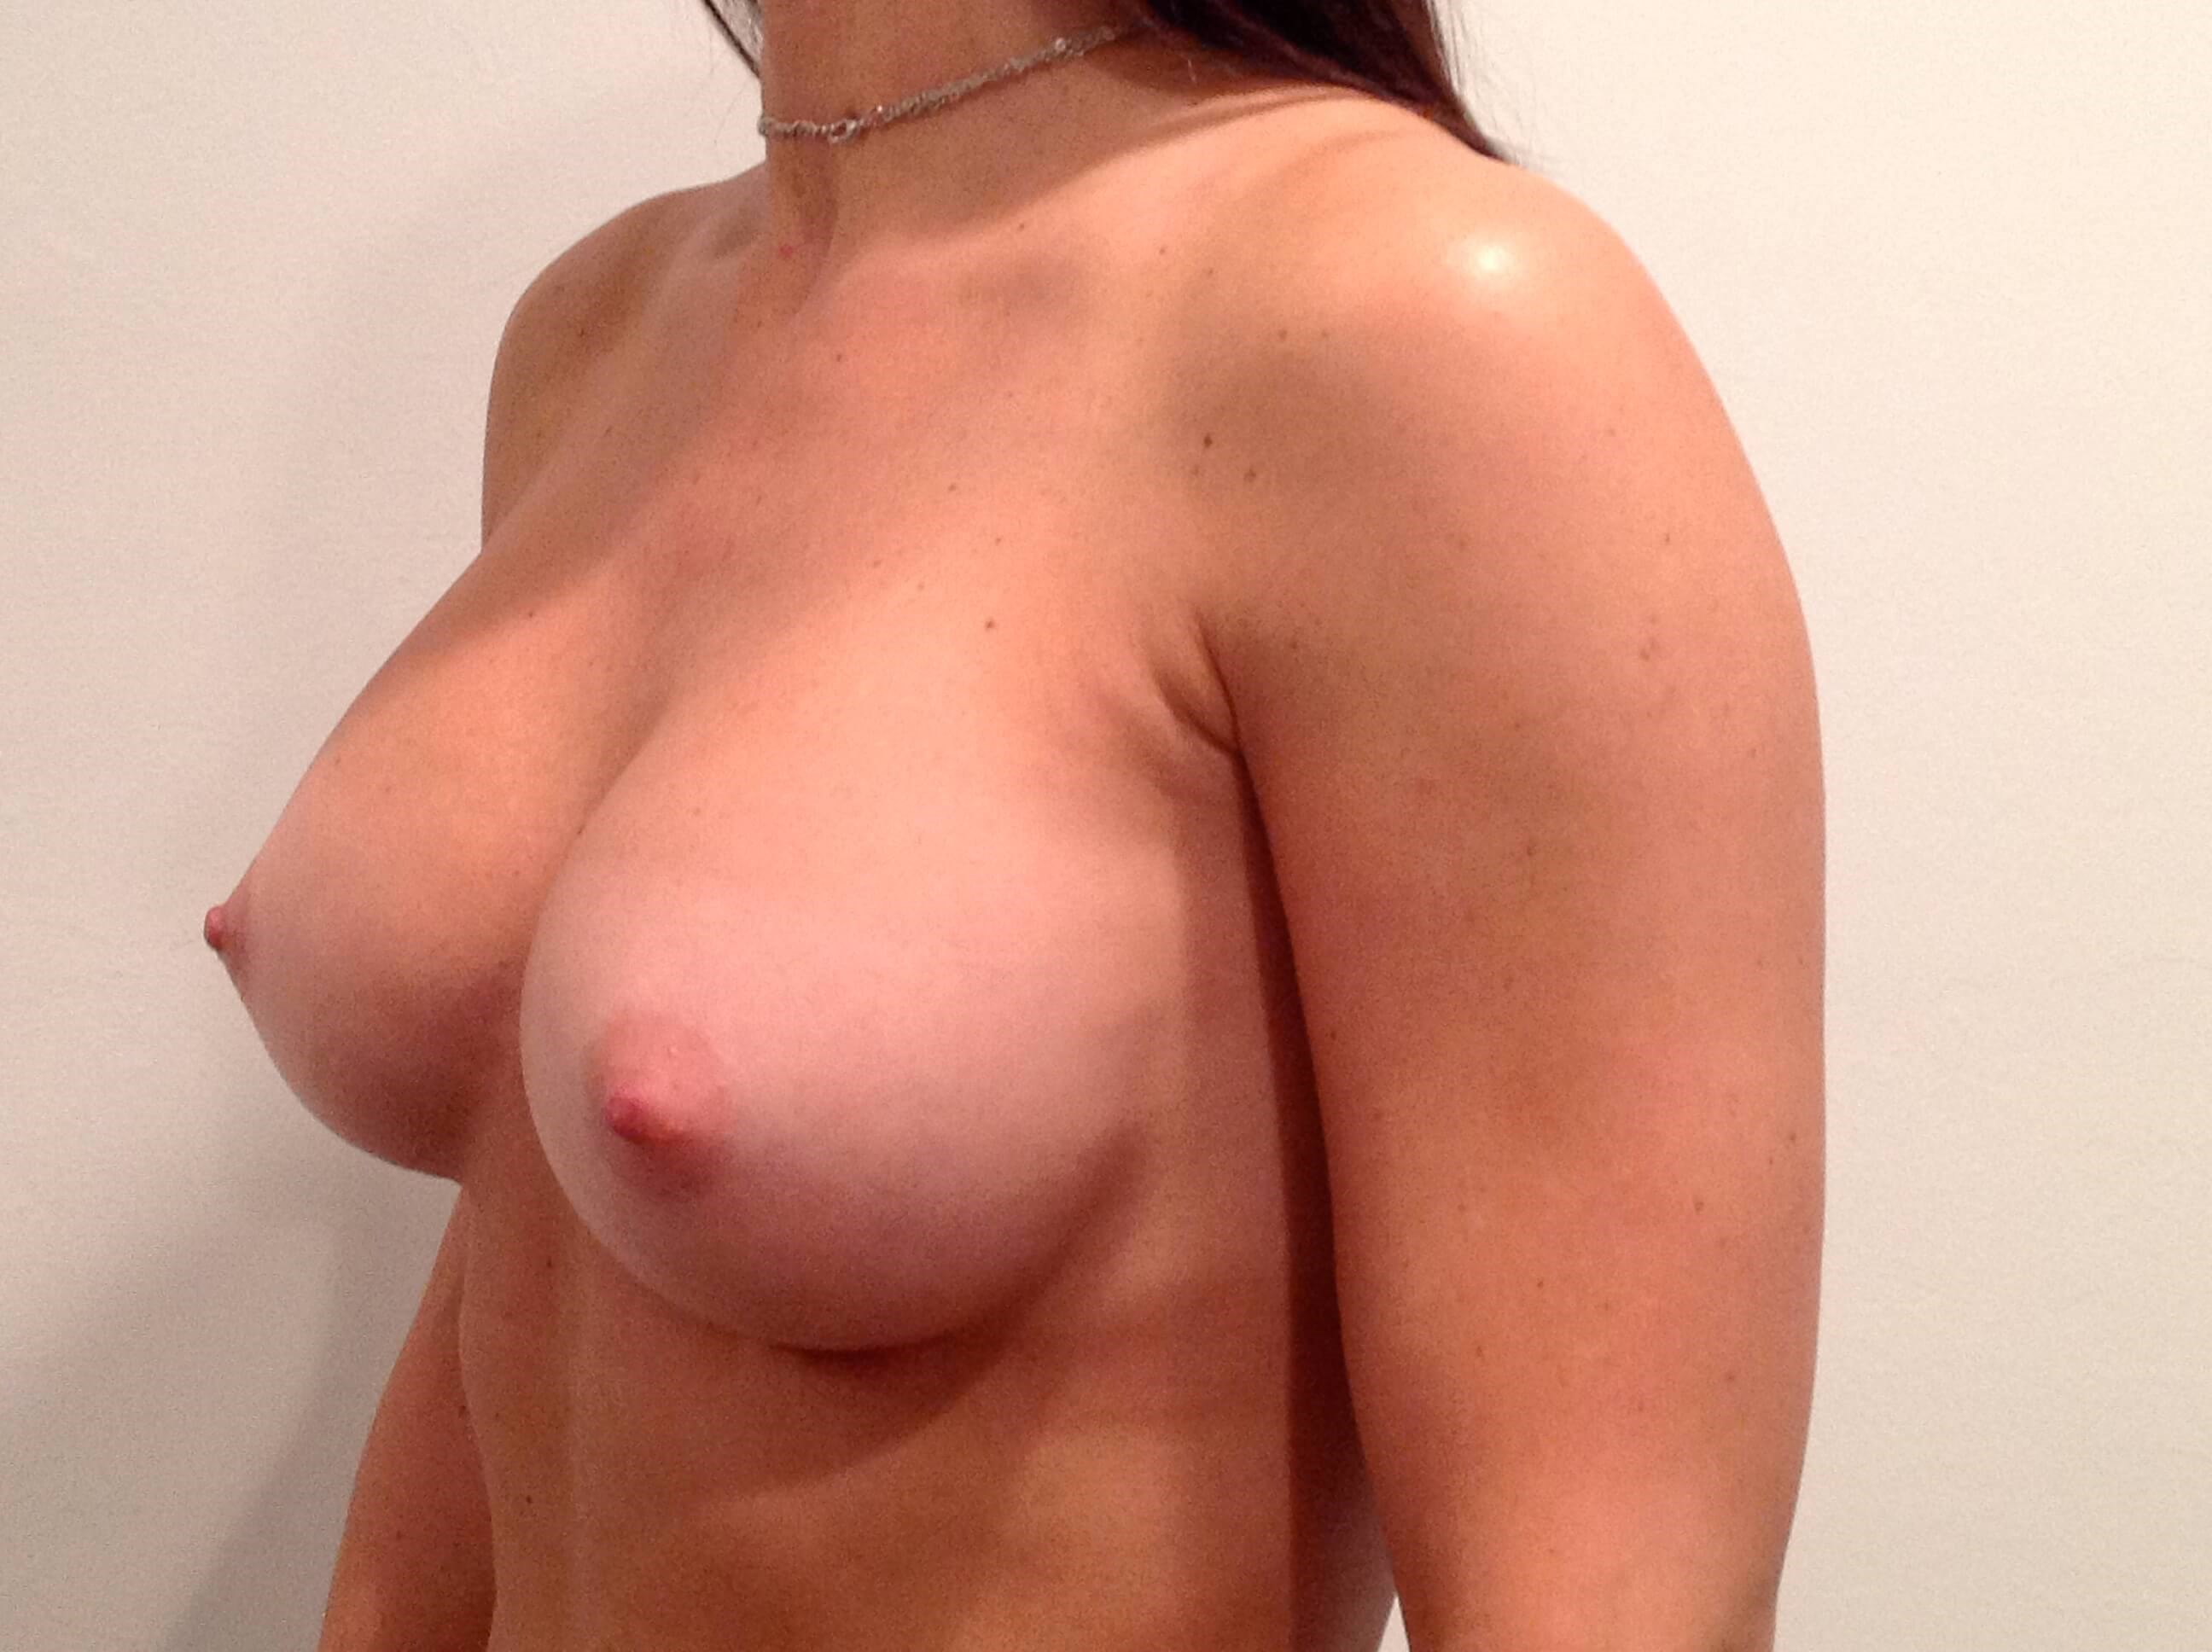 Breast Augmentation Oblique After 325 cc Gel Implants